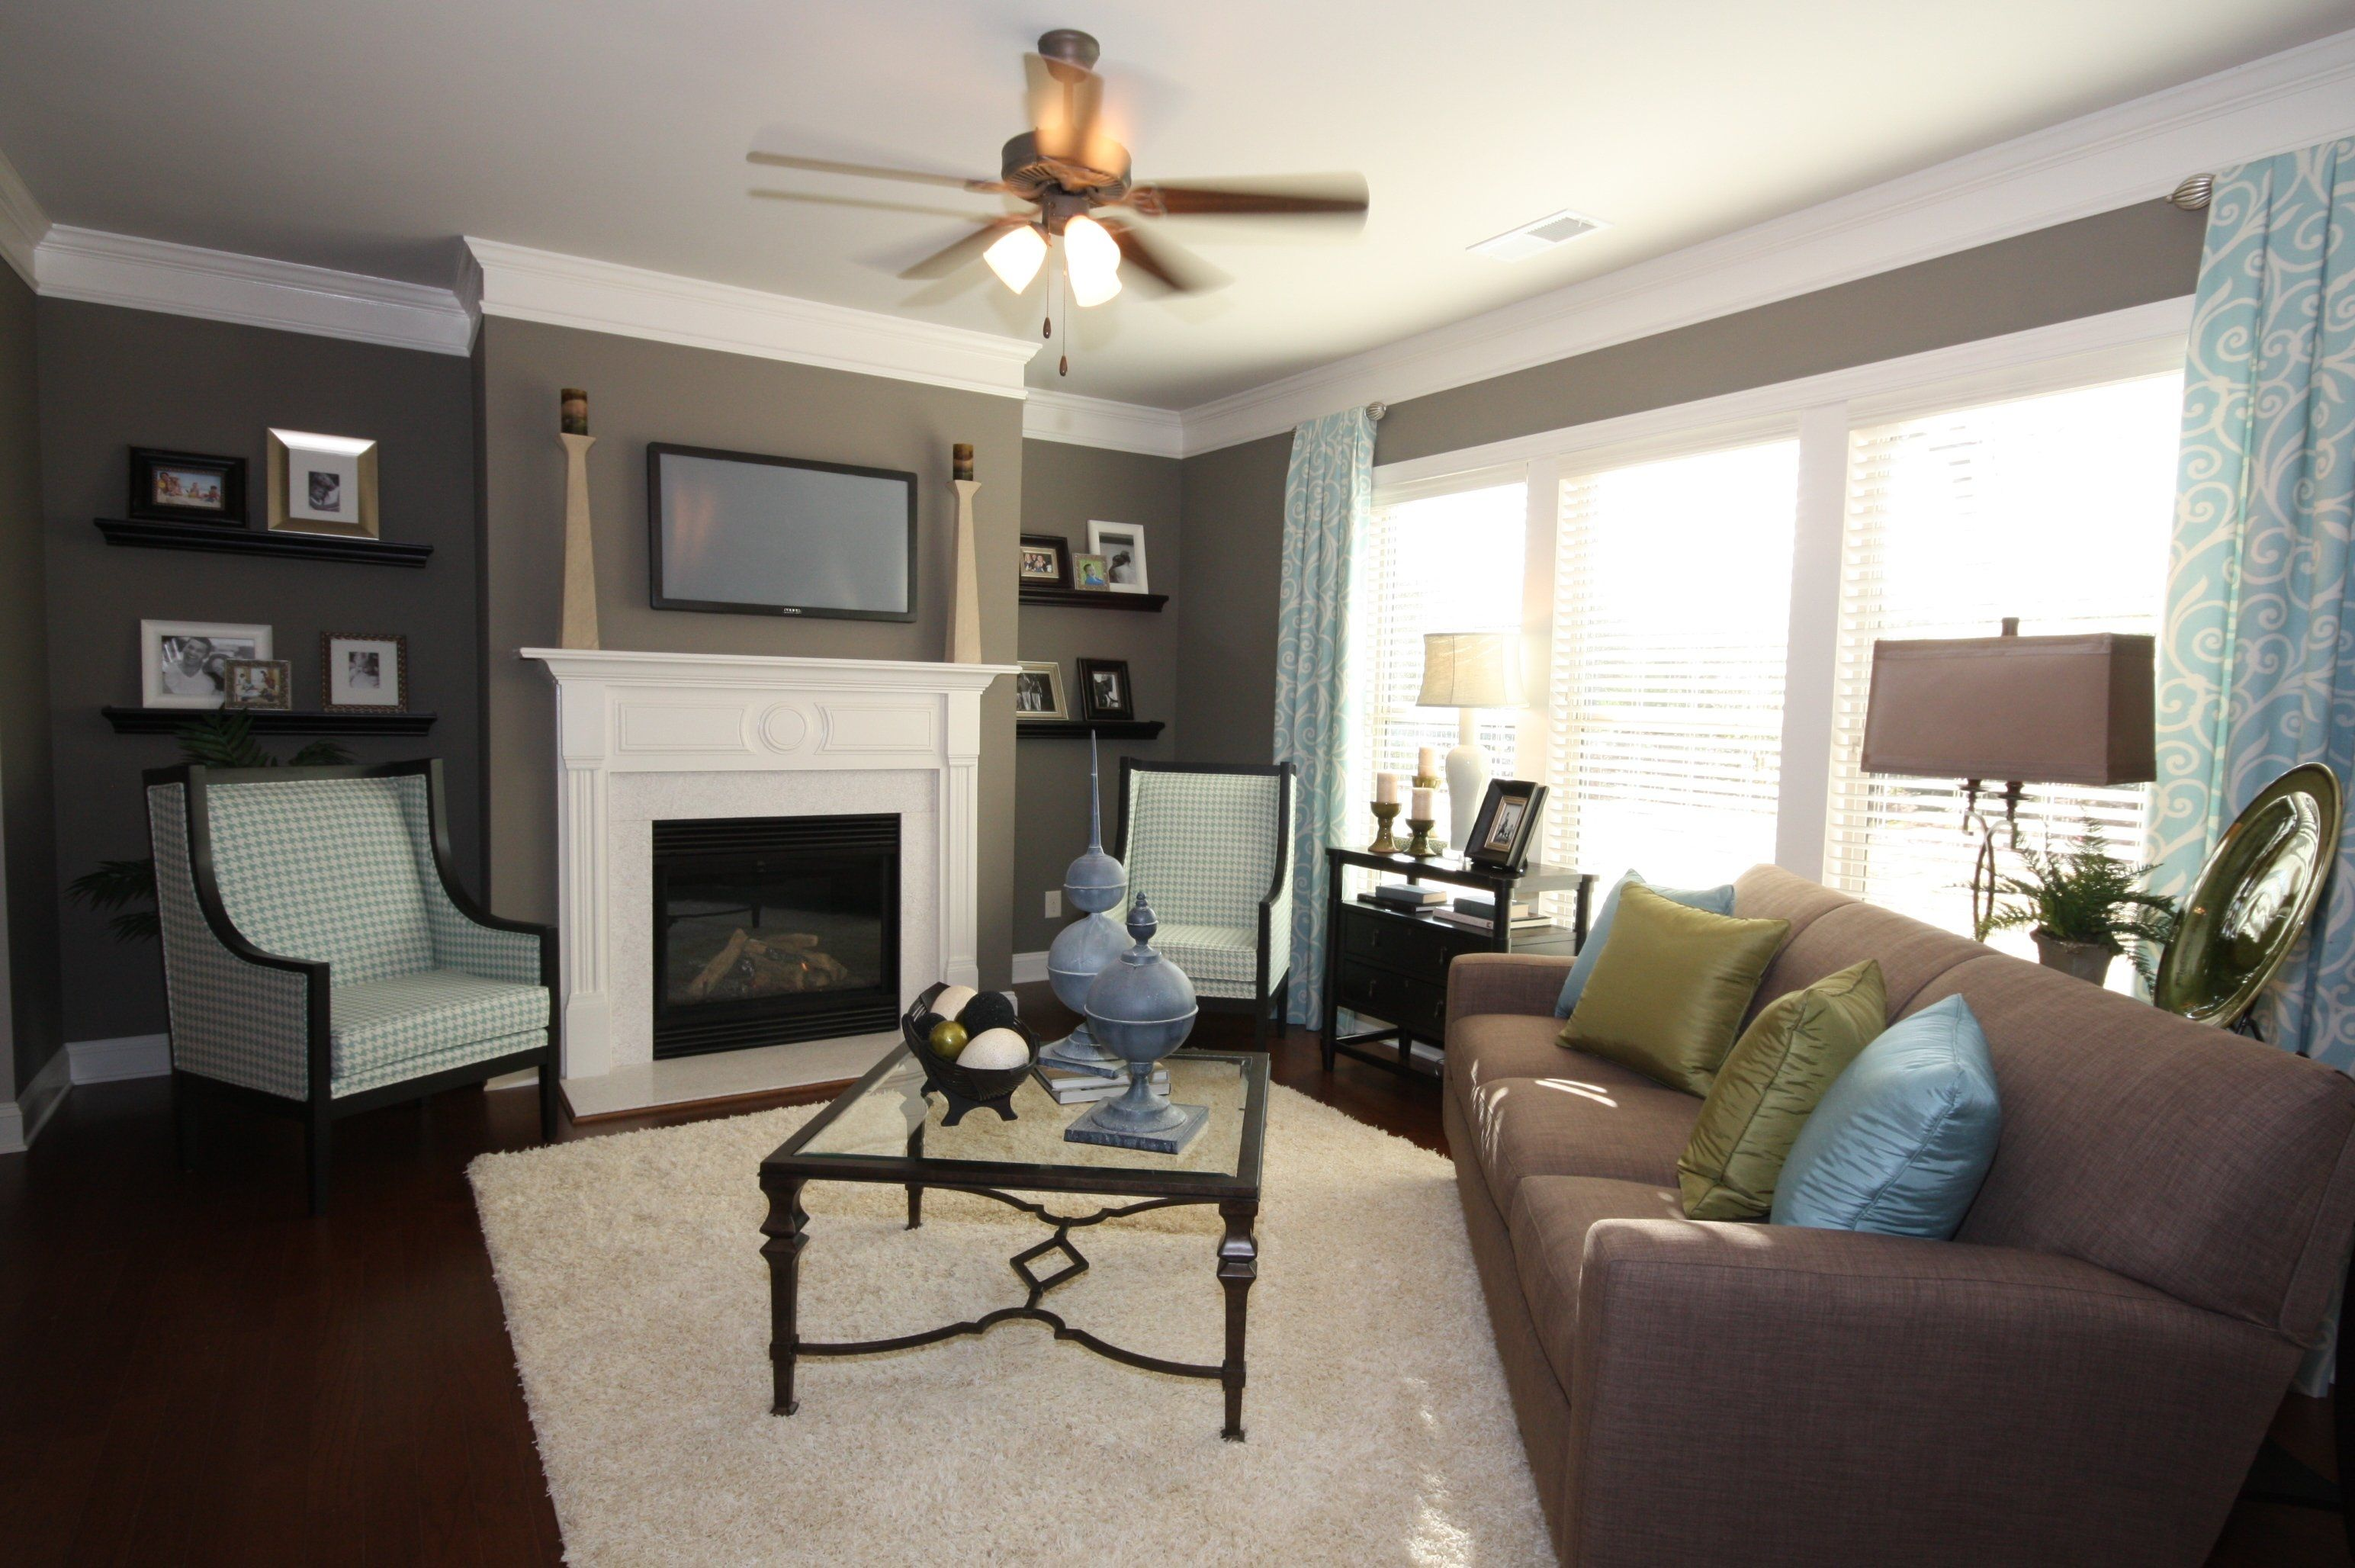 Blue, Brown, Grey Color Scheme In The Family Room